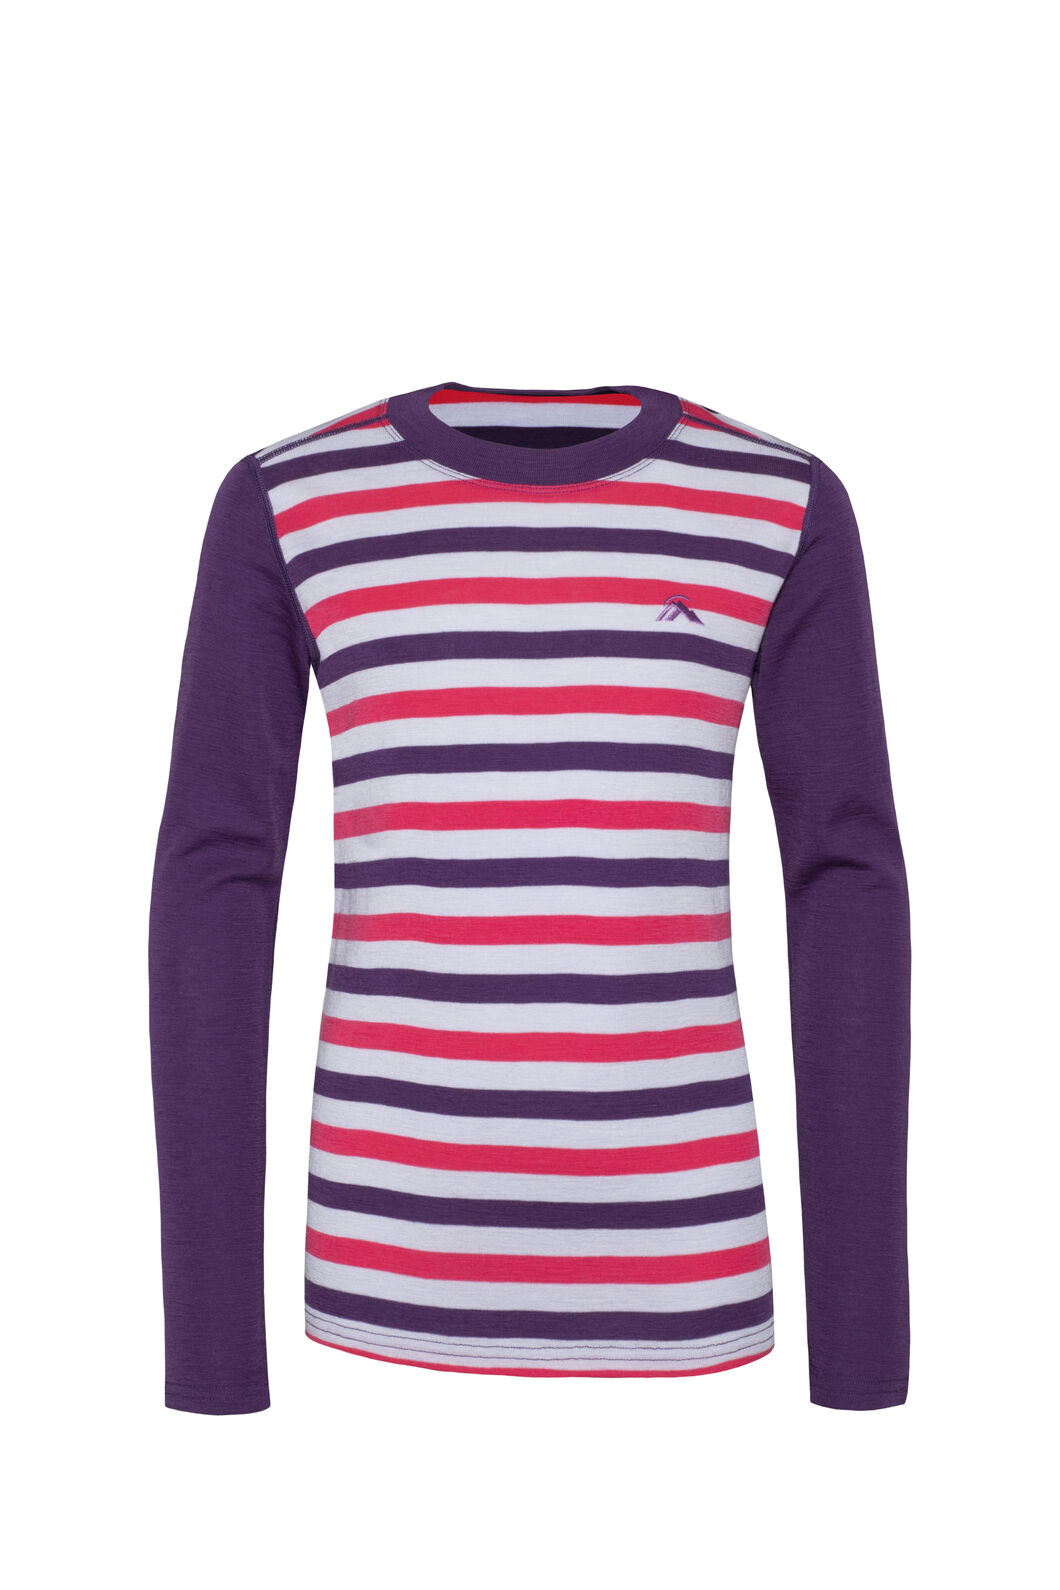 Macpac 220 Merino Long Sleeve Top — Kids', Wineberry Stripe, hi-res